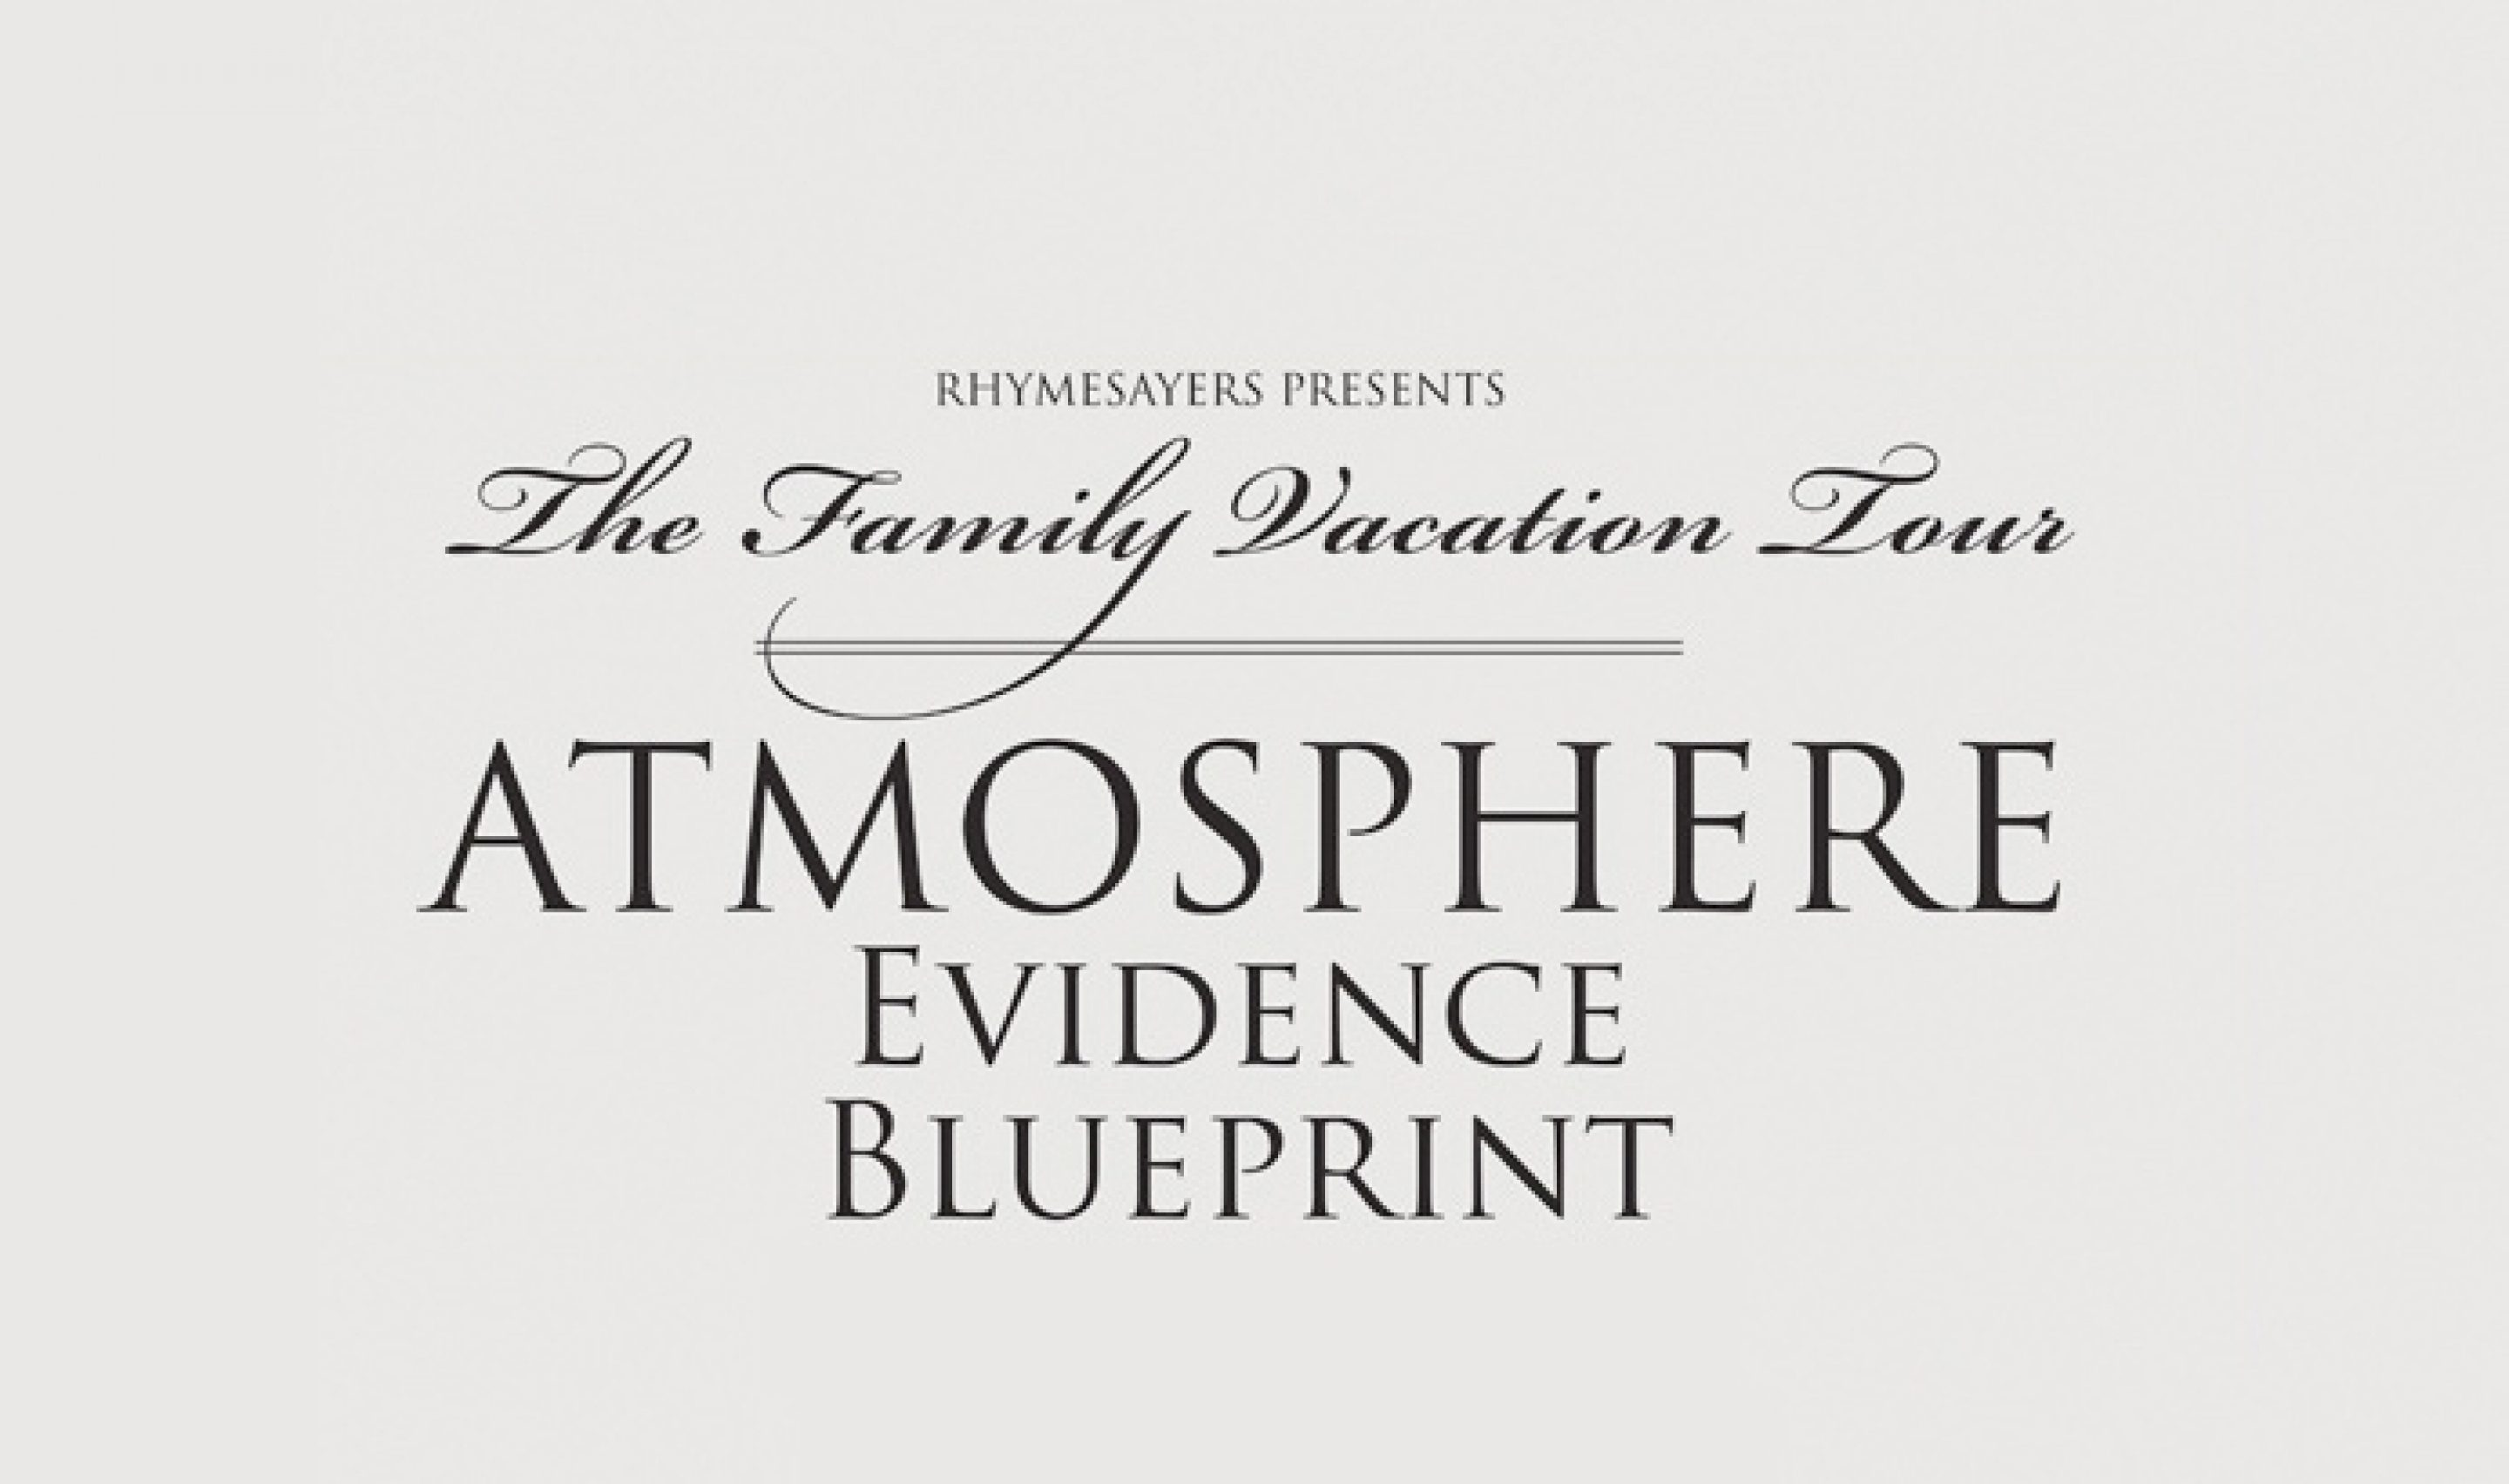 The family vacation tour is in texas for 2 dates rhymesayers the family vacation tour is in texas for 2 dates malvernweather Gallery